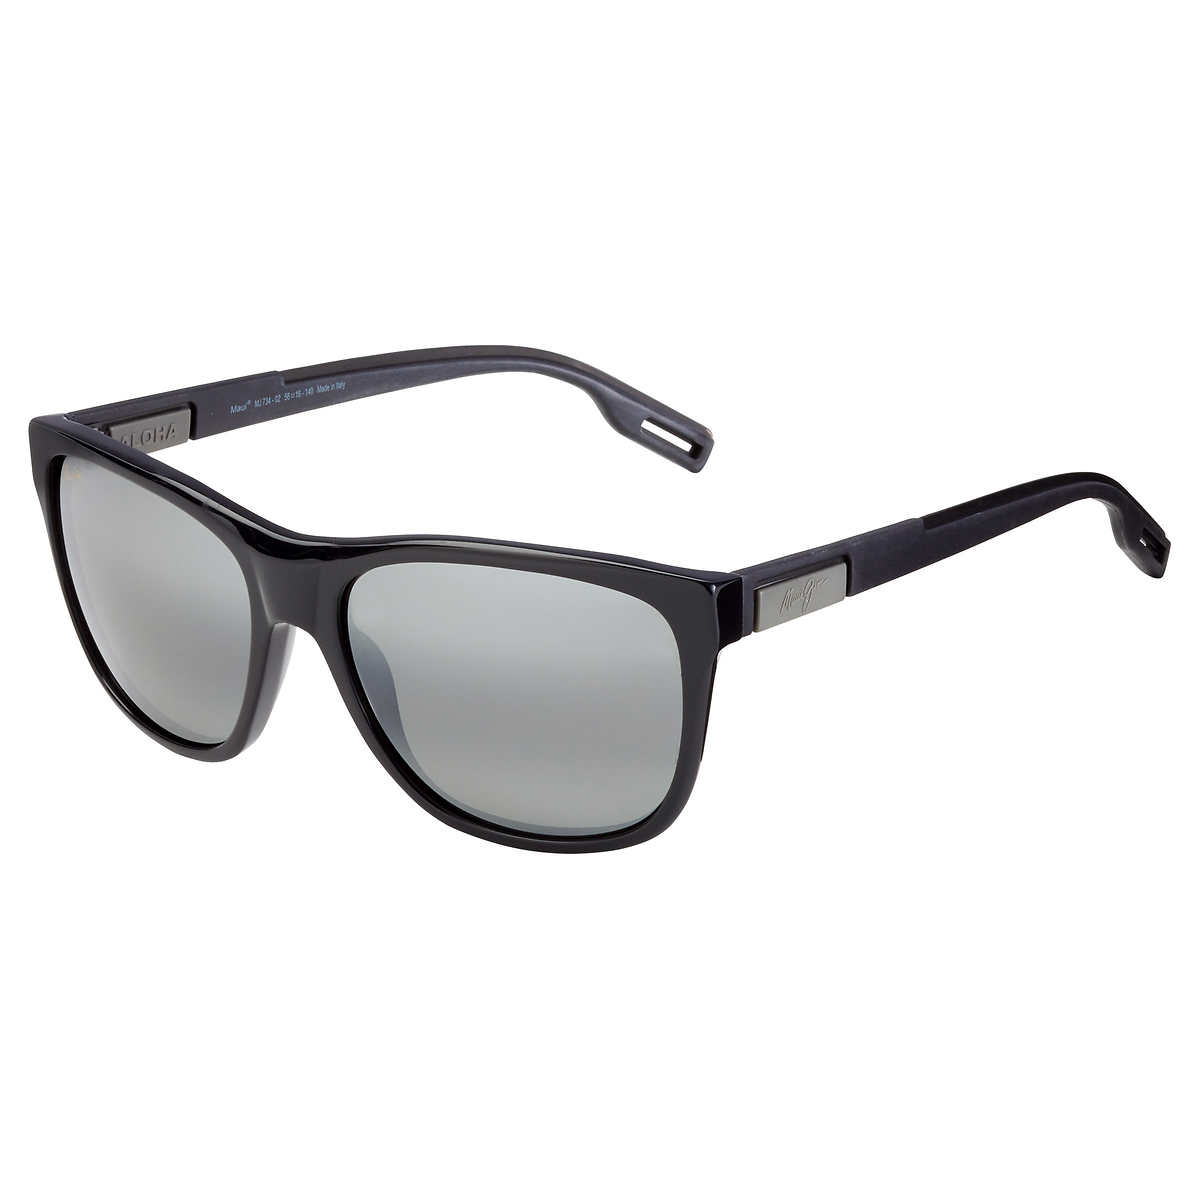 0e77b1e5e19b ... Maui Jim Howzit 734-02 Gloss Black Polarized Sunglasses. 1 1